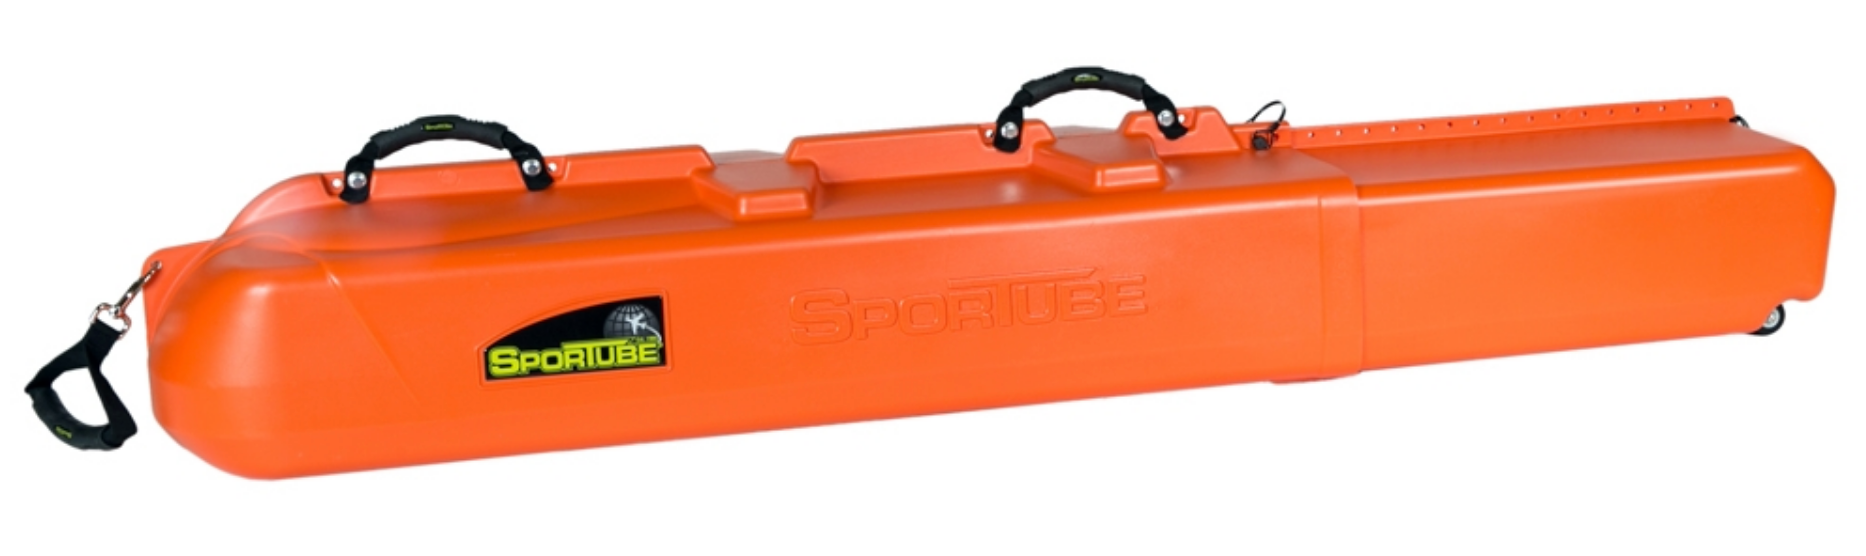 Sportube Series 3 Ski Travel Case